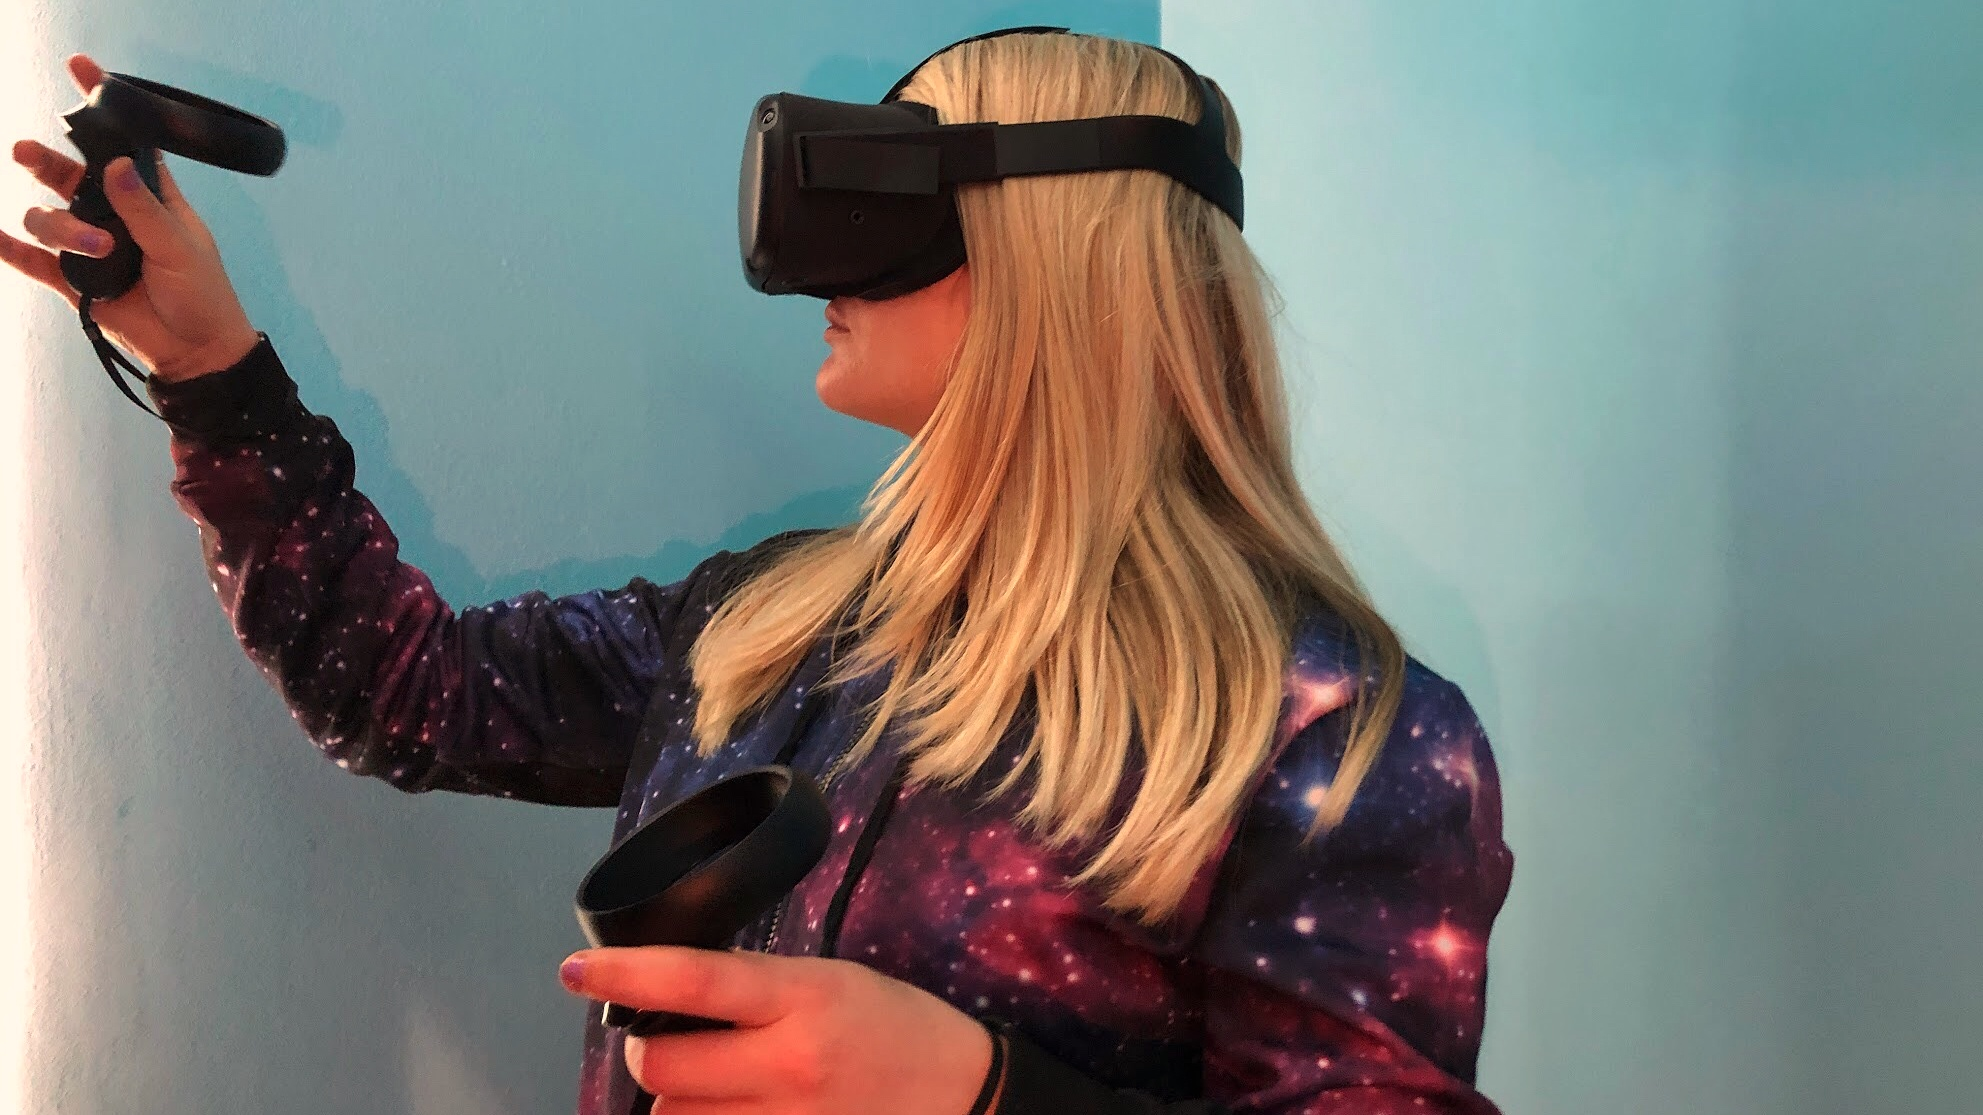 An image of becca wearing the Oculus Quest